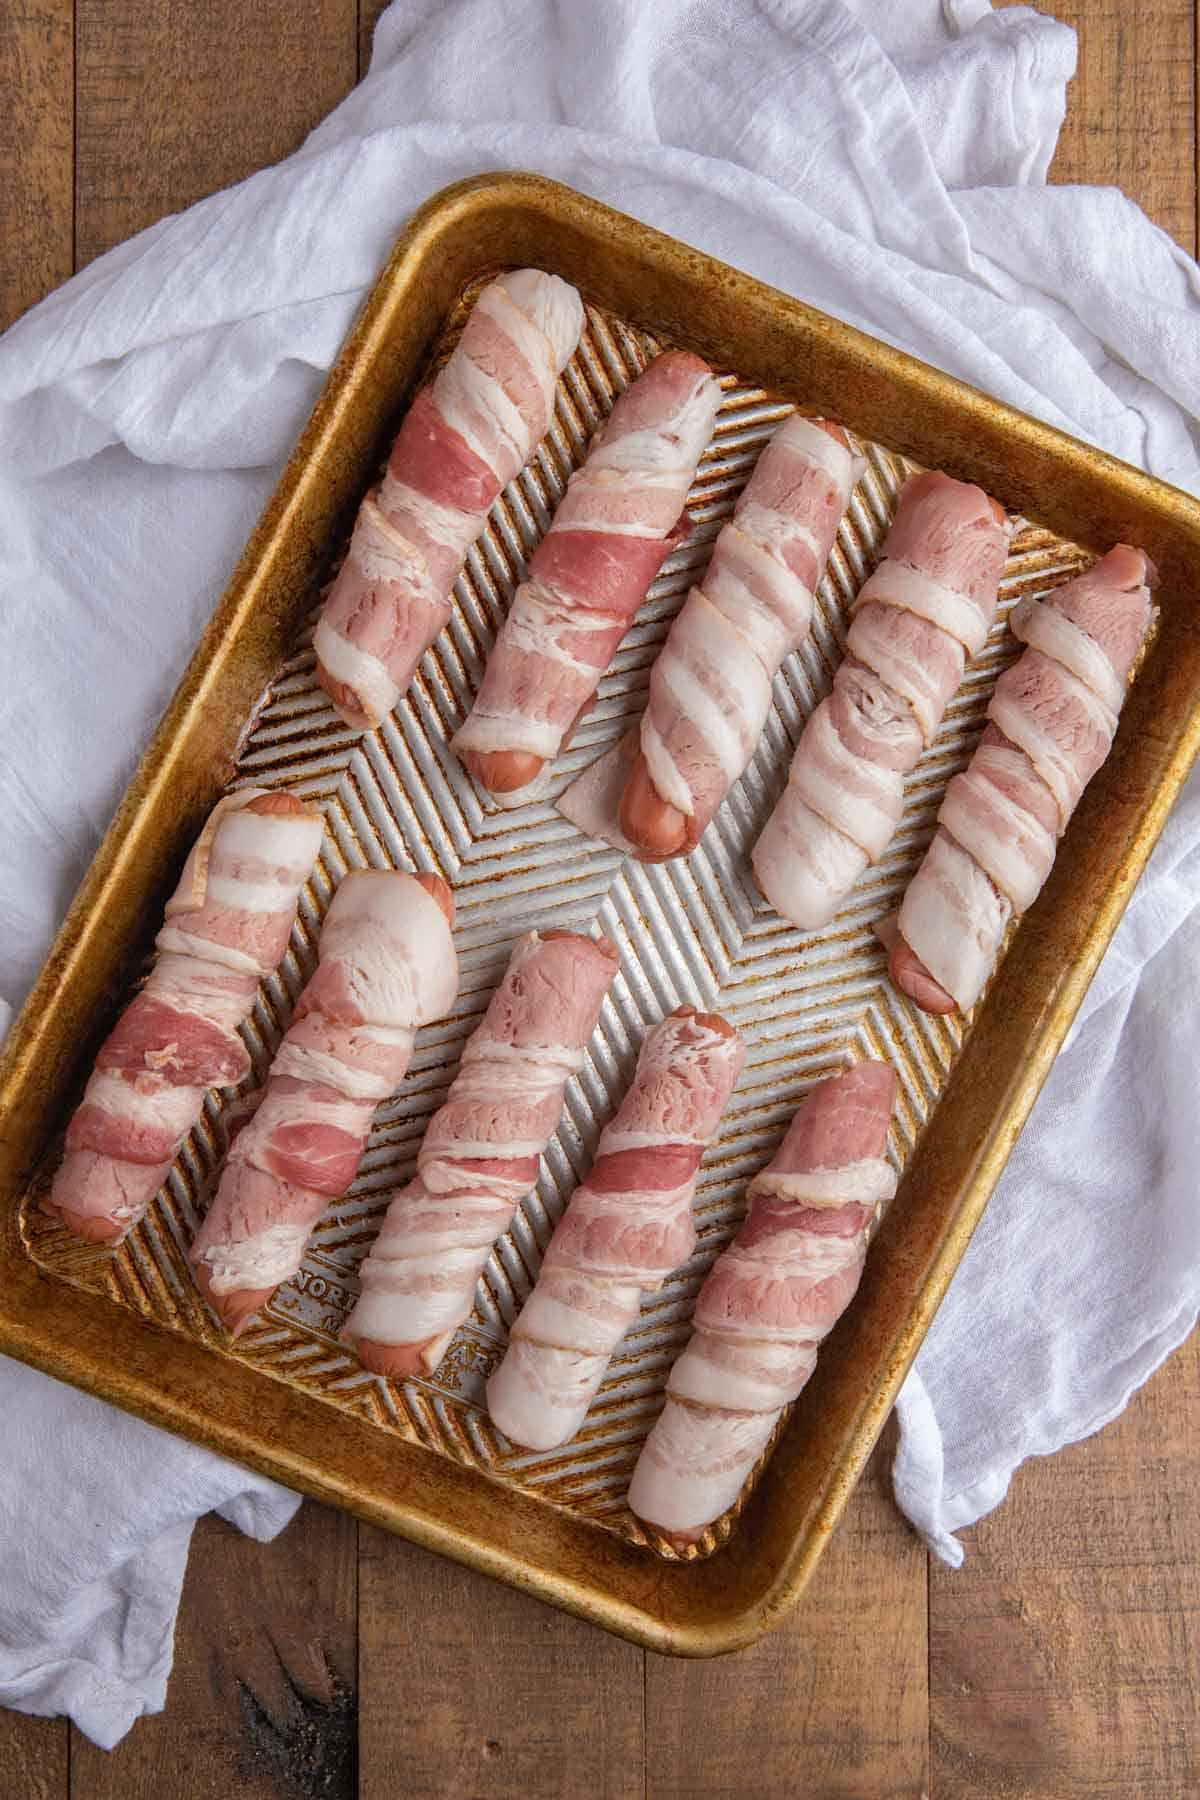 Raw Bacon wrapped around hot dogs